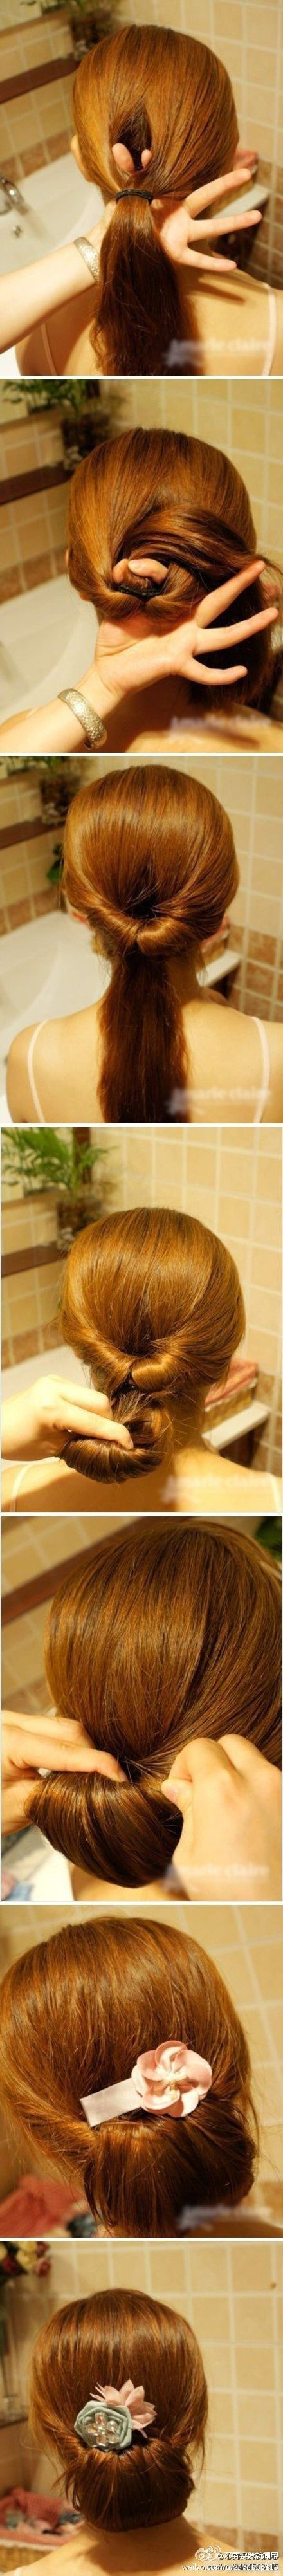 Flipped up pony updo. Before flipping round the second pony tail, back comb and spray some hairspray on it first to give it more volume and hold to stay in place.